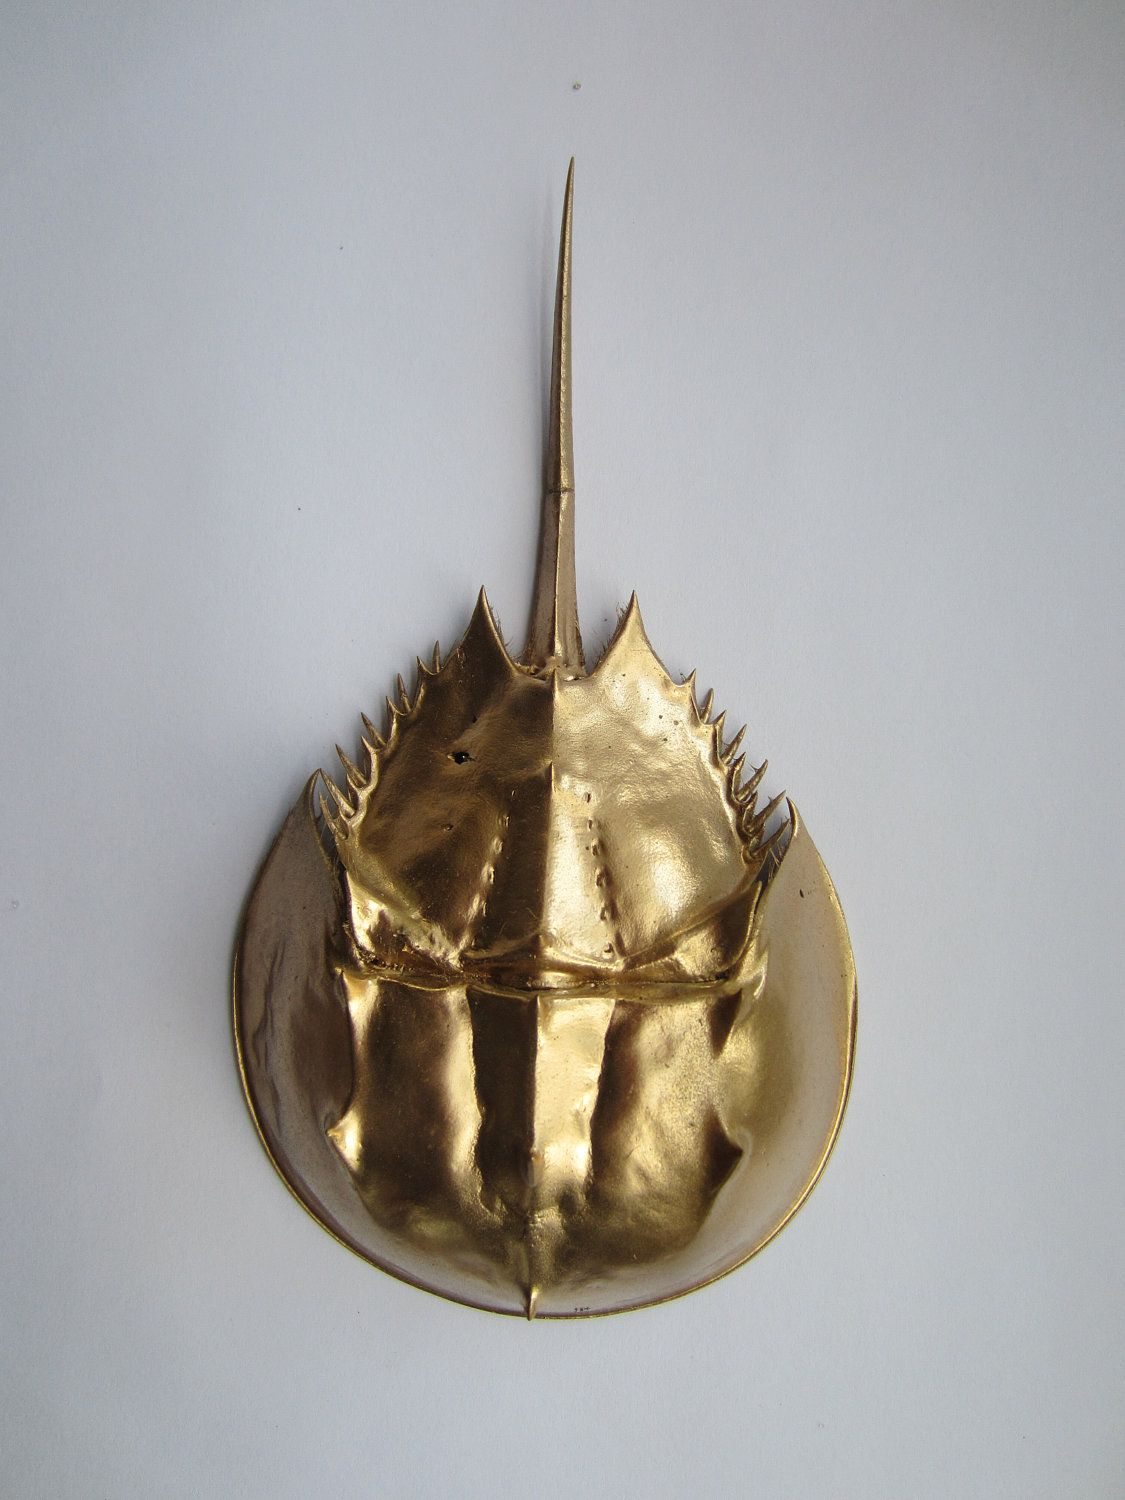 Gold Painted Horseshoe Crab For Christmas Holiday Craft Or Holiday